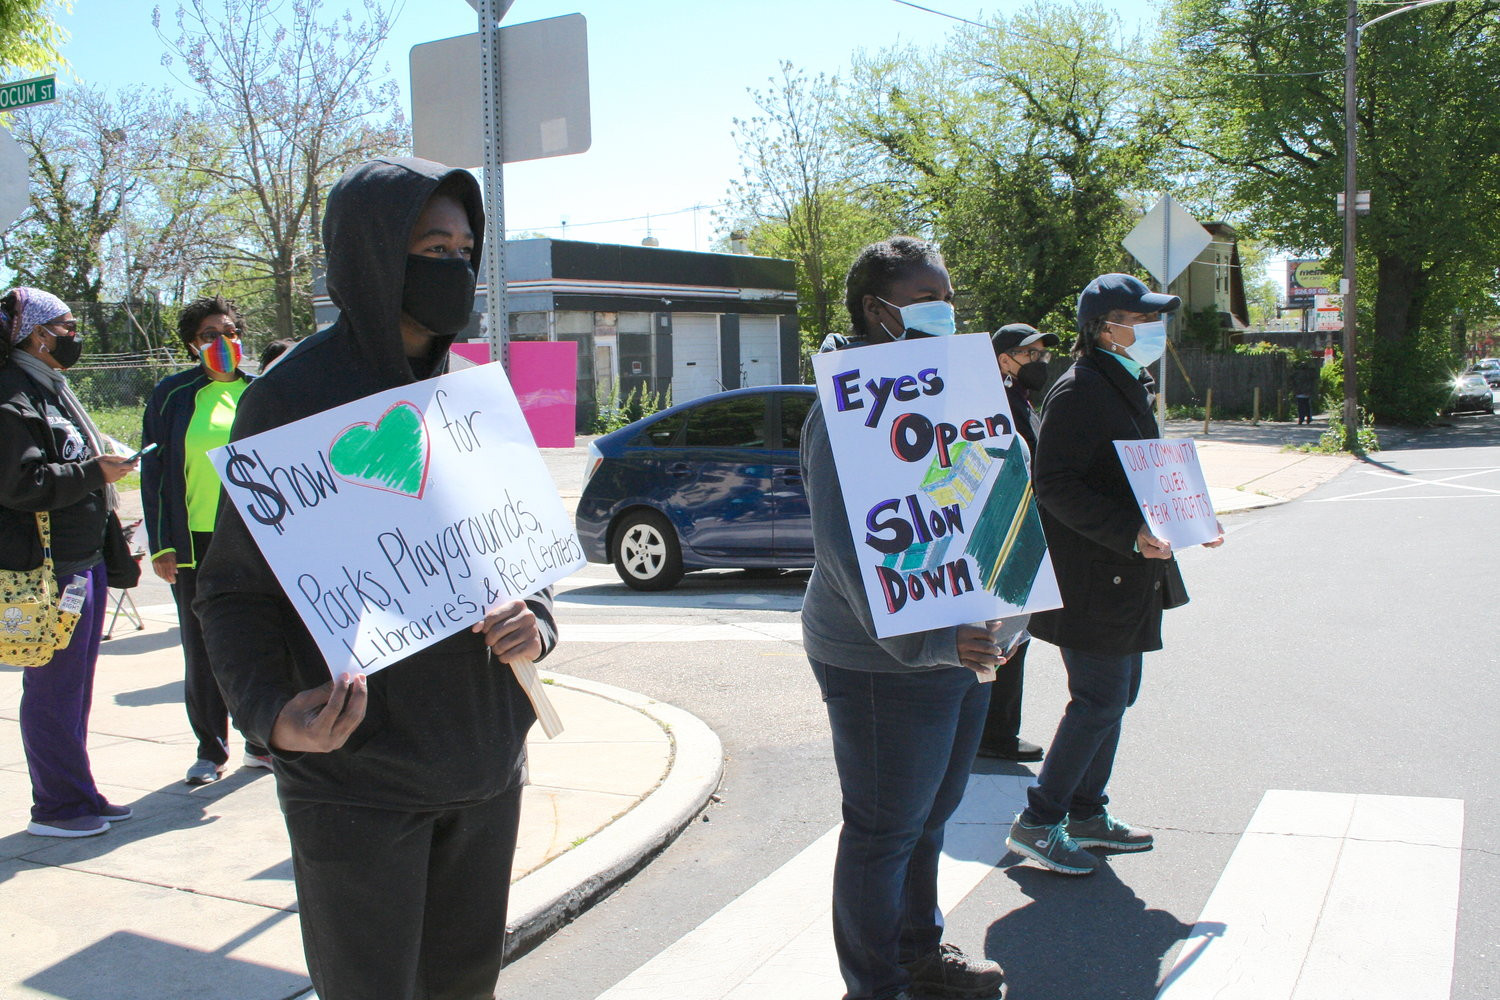 Tajae Faxon, Carla Bell, Evonne Tisdale, and other neighbors demonstrated in front of the Pleasant Playground Recreation Center, May 1, calling for a stop to the proposed development at 6717 Chew, which is visible in the background. They claimed the development will hurt the neighborhood and the playground and will worsen already bad traffic concerns outside the recreation center. (Photo by Patrick Cobbs)